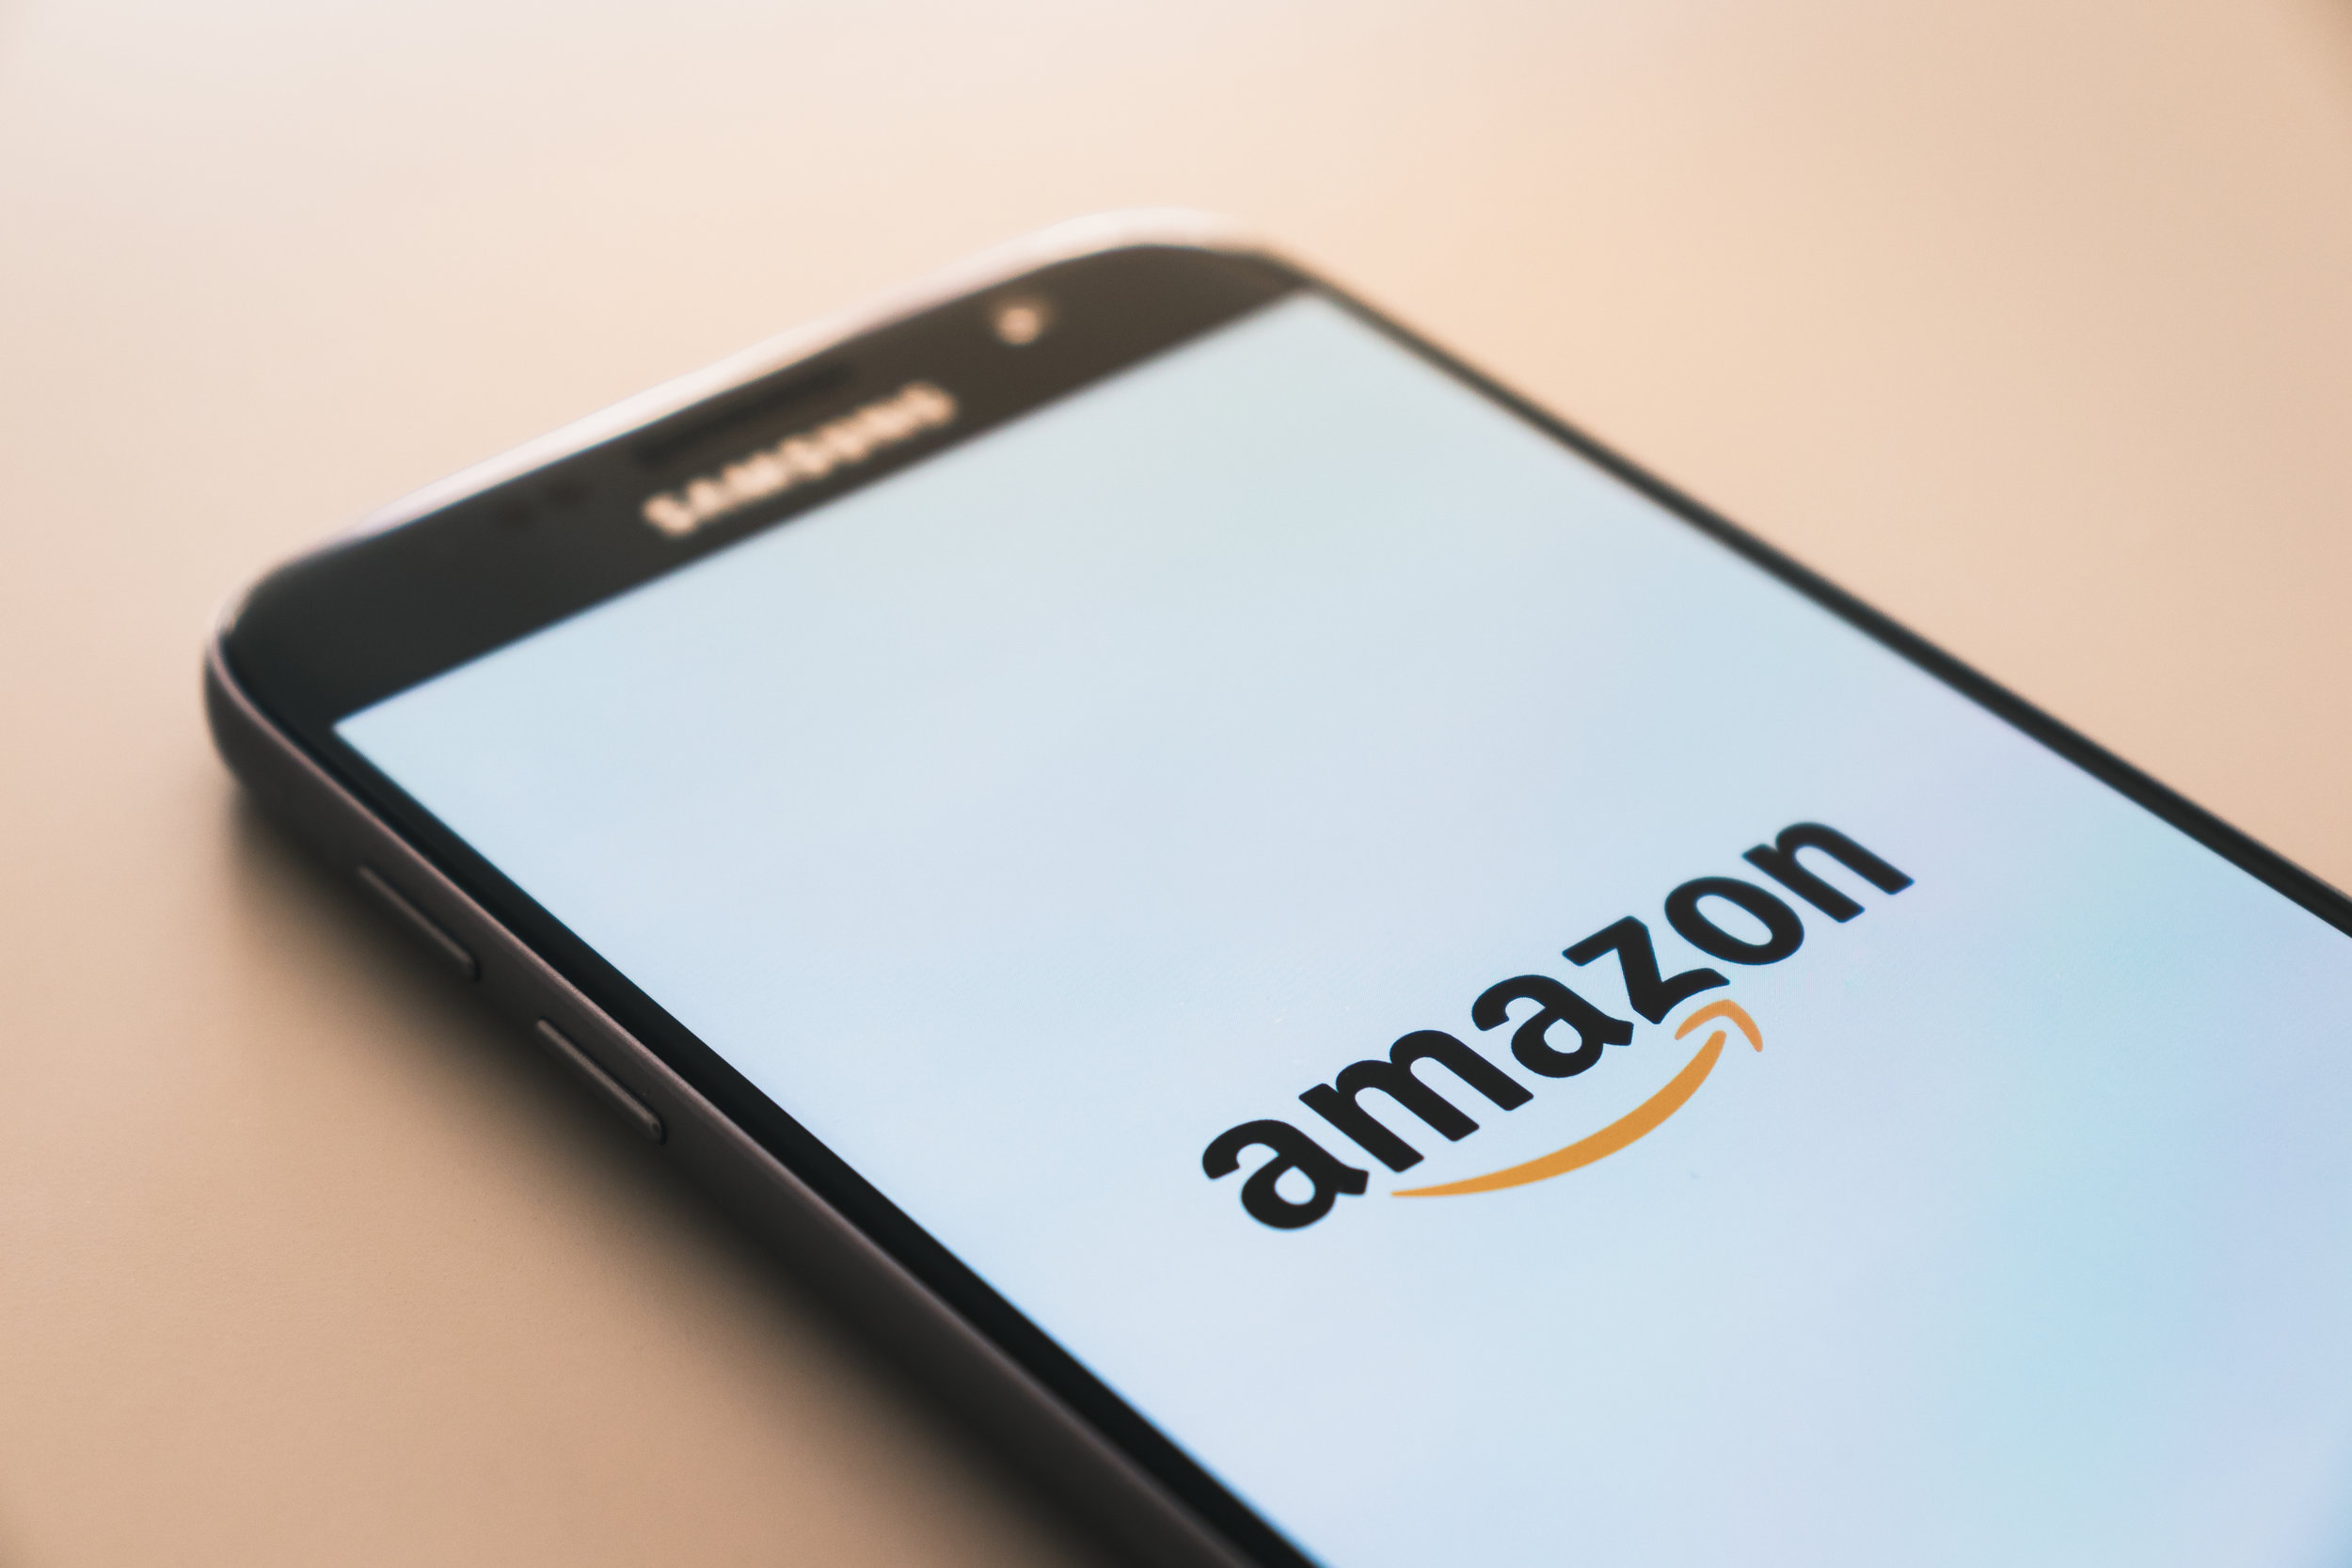 Amazon Ads Guide - Amazon Ads is the most underutilized advertising platform, but not for long. Designed for ecommerce retailers, start pushing product today.